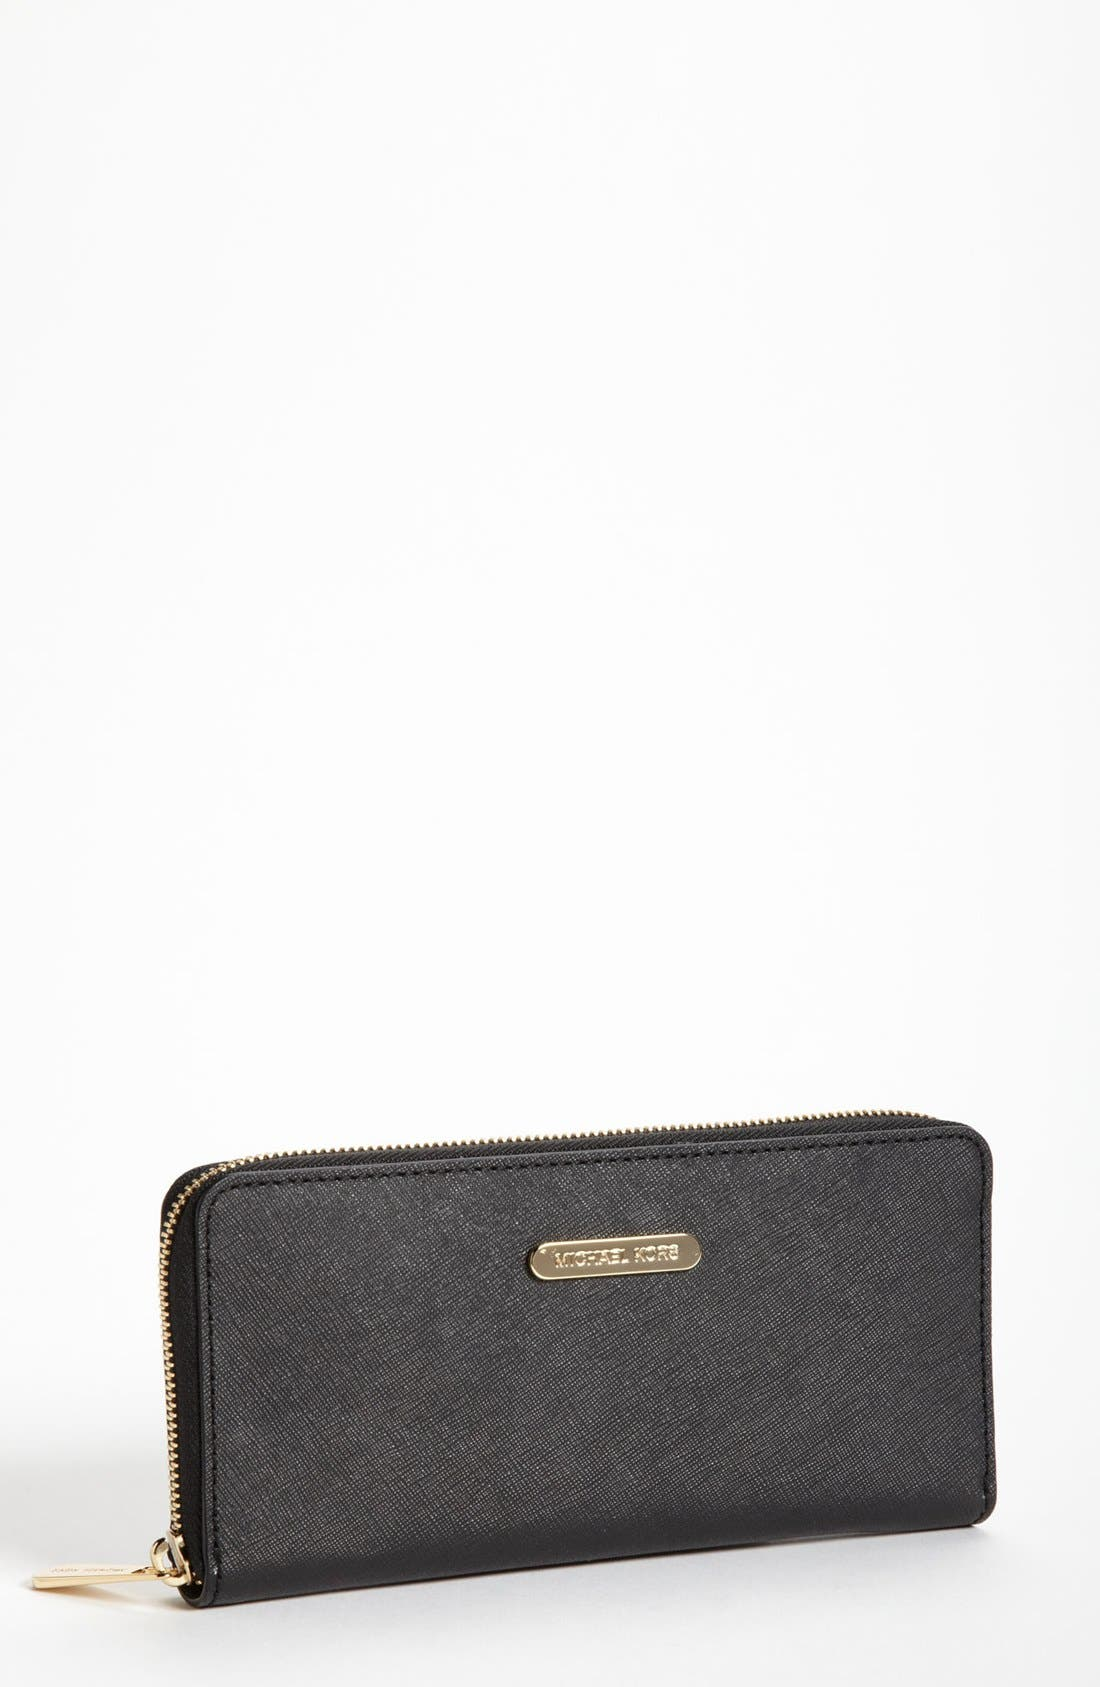 Main Image - MICHAEL Michael Kors Saffiano Leather Zip Around Wallet